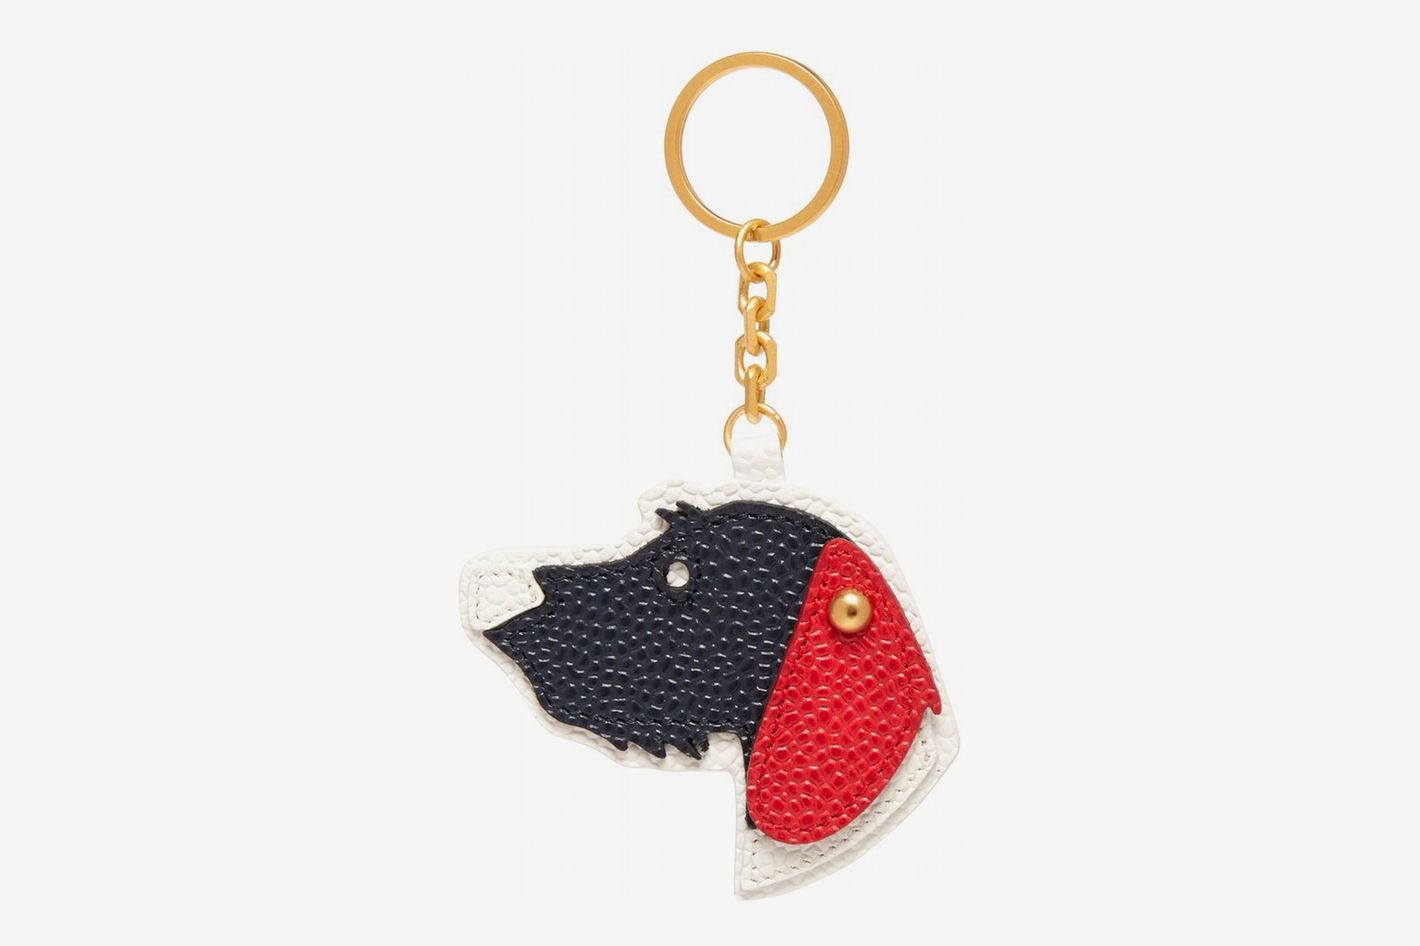 Thom-Browne Hector Pebbled Leather Key Ring